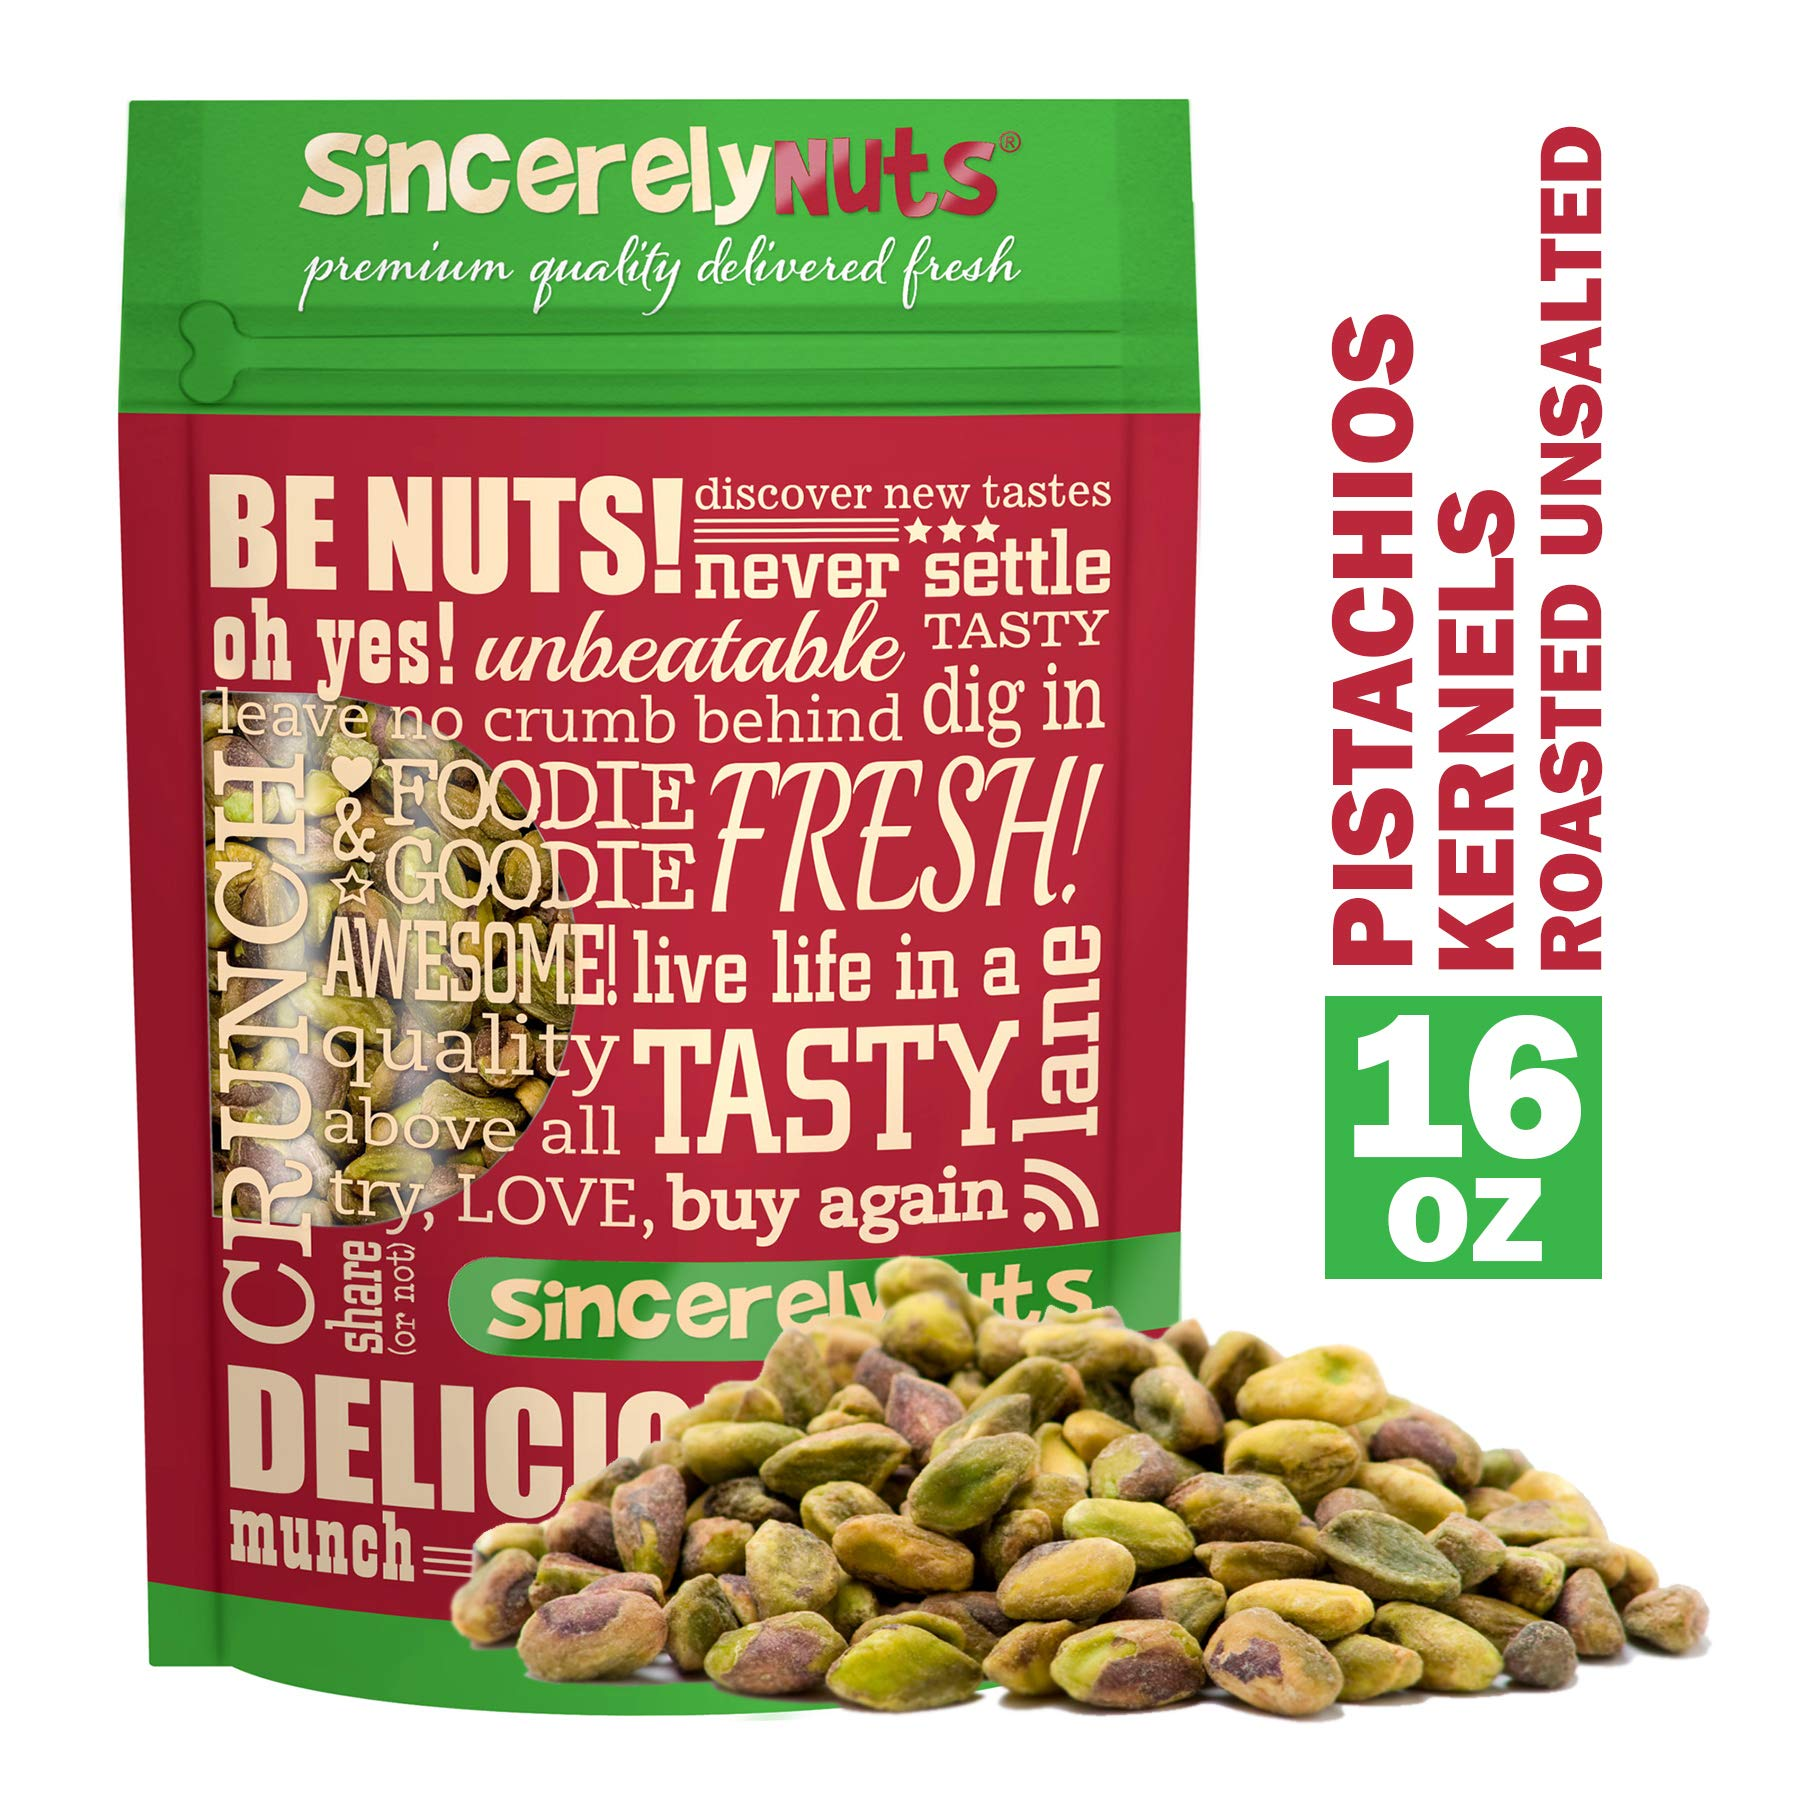 Sincerely Nuts Pistachios Roasted & Unsalted Kernels (No Shell) - 1 Lb. Bag - Healthy Snack Food | Great for Cooking | Source of Fiber, Protein & Vitamins | Gourmet | Vegan, Kosher & Gluten Free by Sincerely Nuts (Image #1)